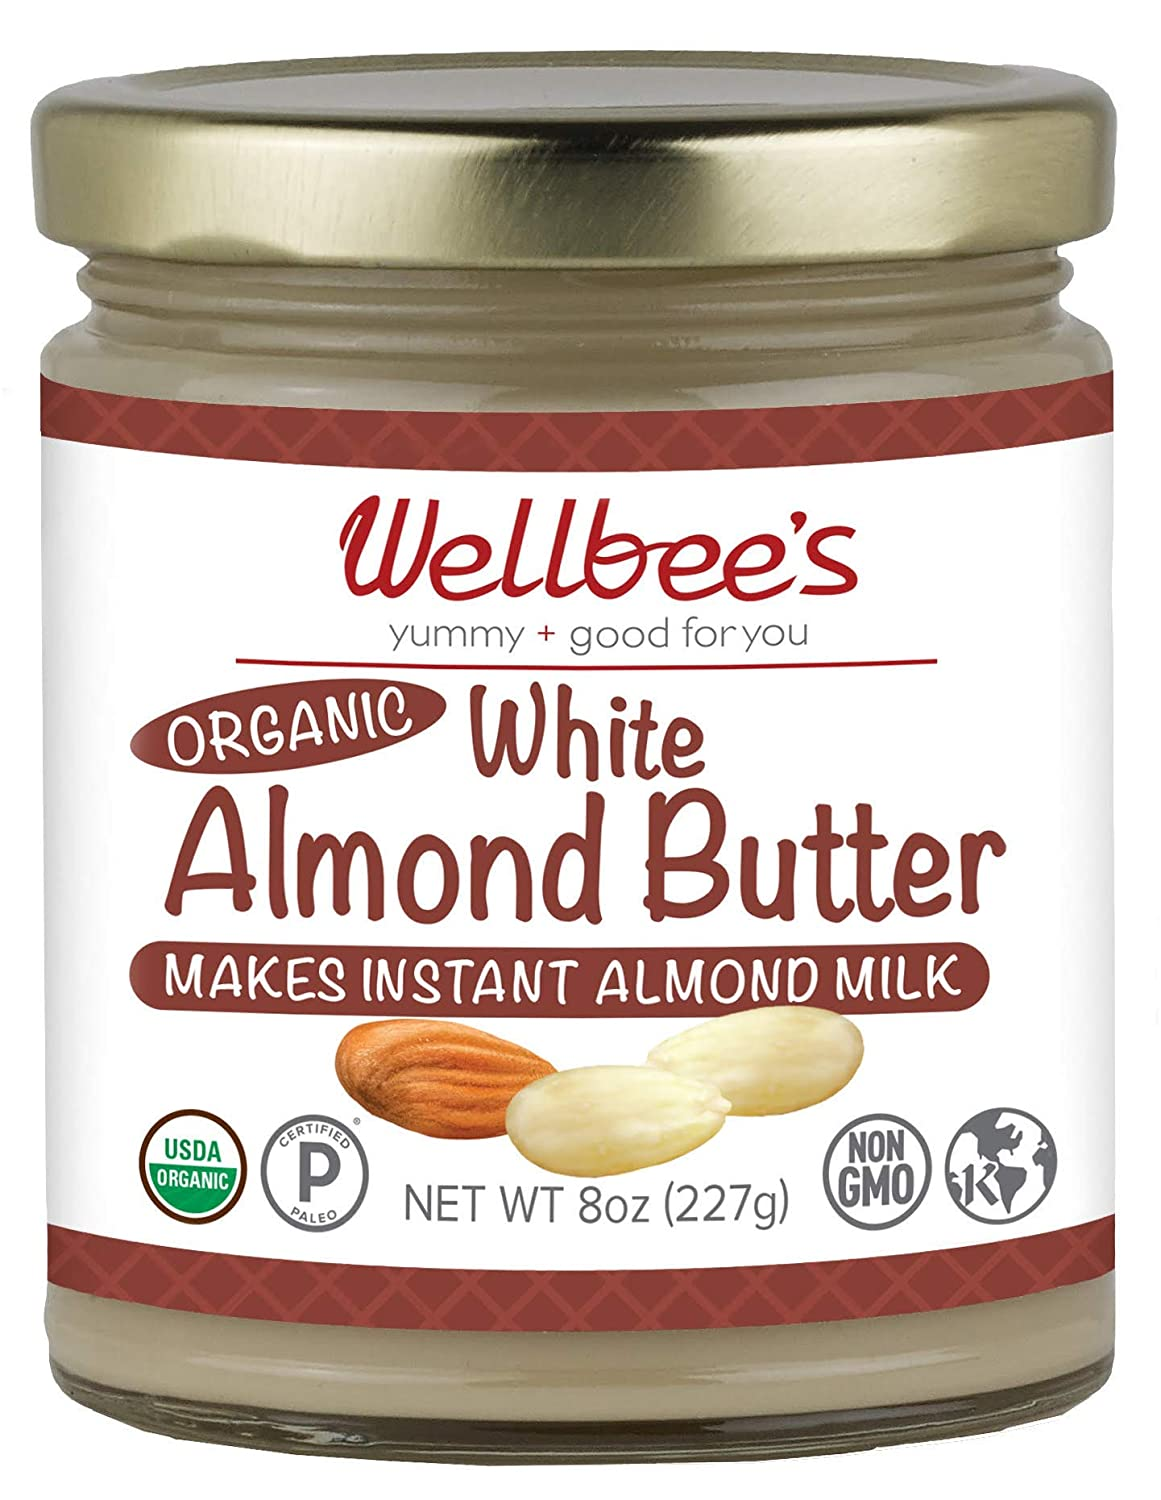 Blanched Almond Butter, Wellbee's Image